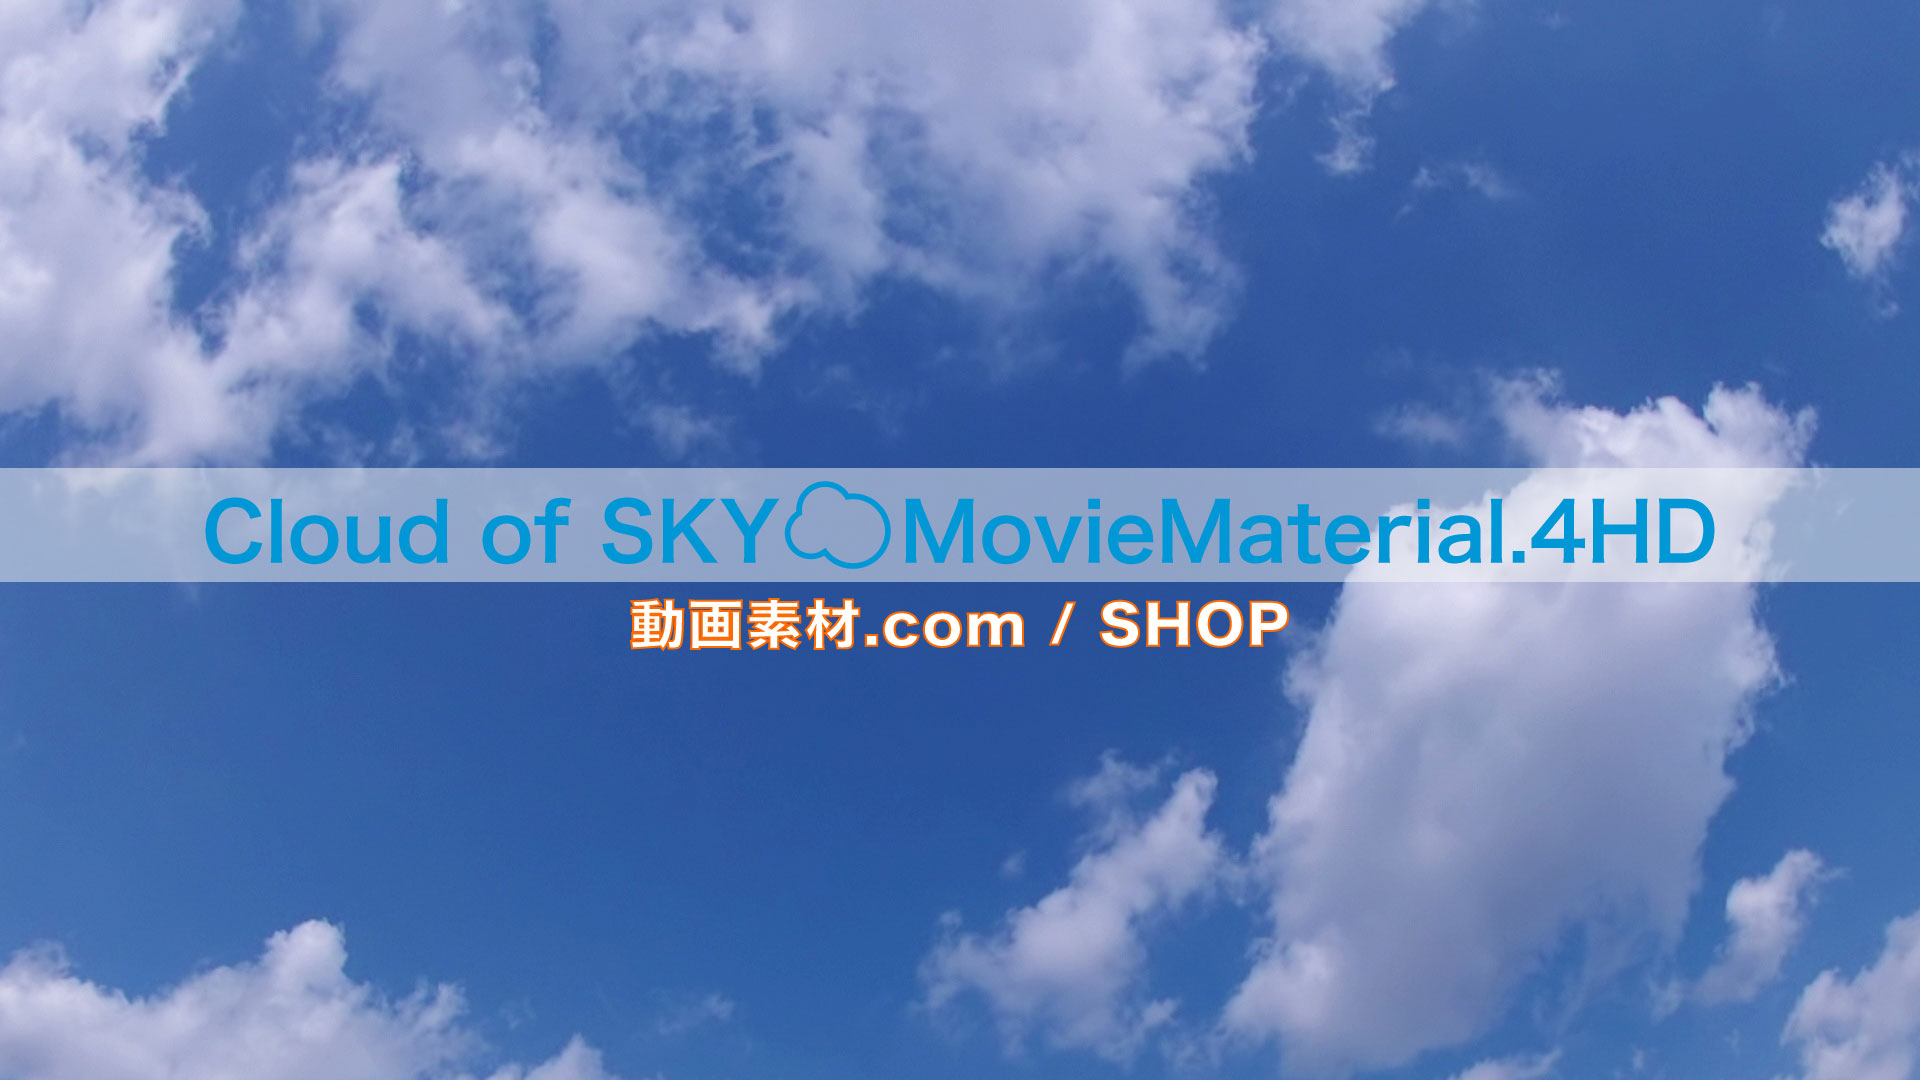 【Cloud of SKY MovieMaterial.4HD】ロイヤリティフリー フルハイビジョン空と雲の動画素材集 Image.2